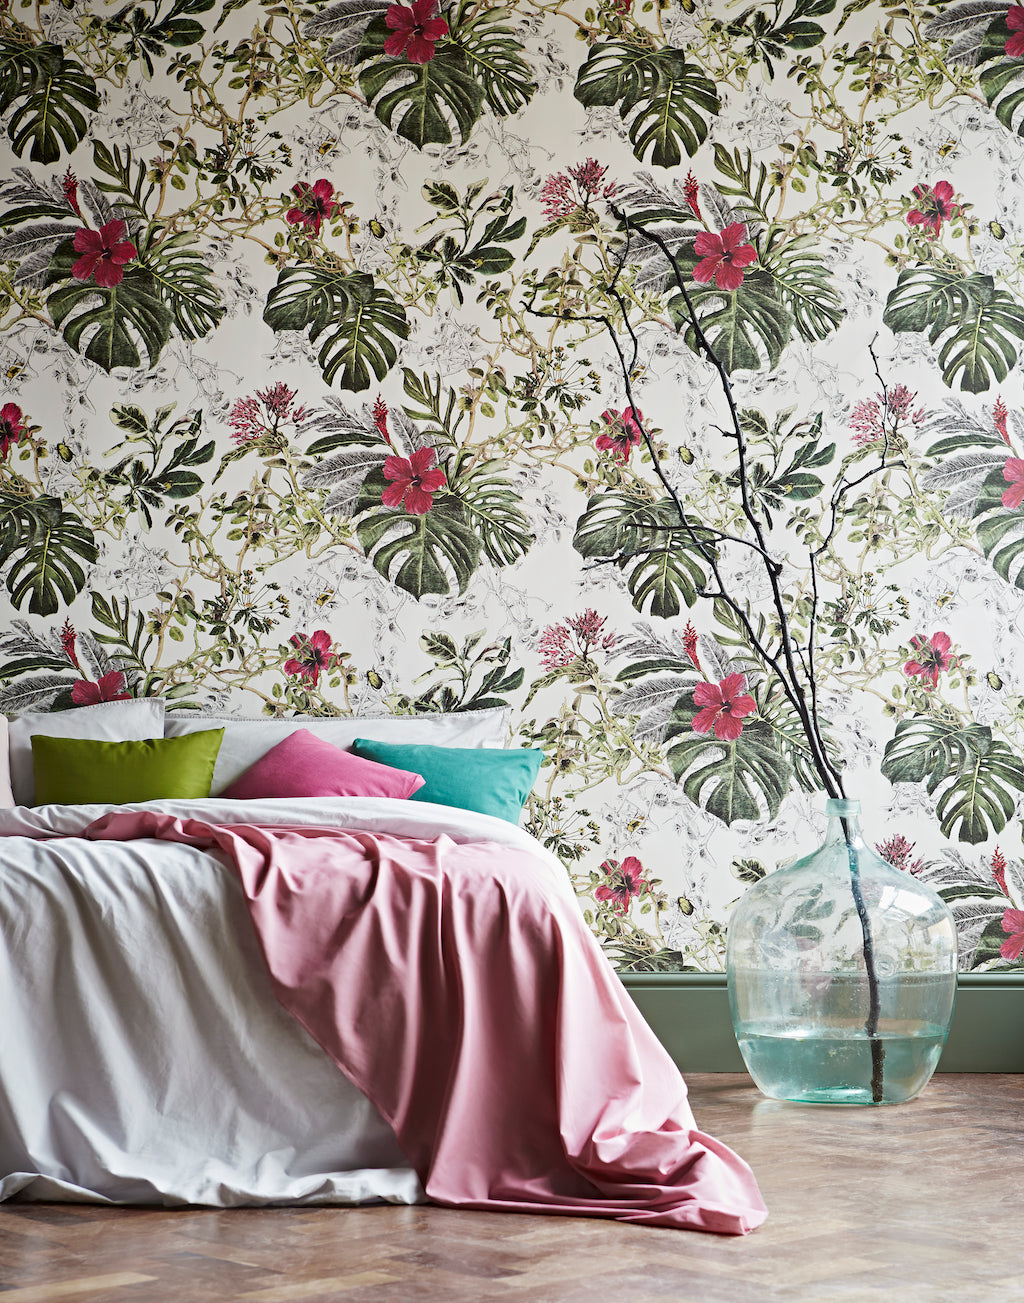 Floral Fun How Floral Trends Have Influenced Our Wallpaper